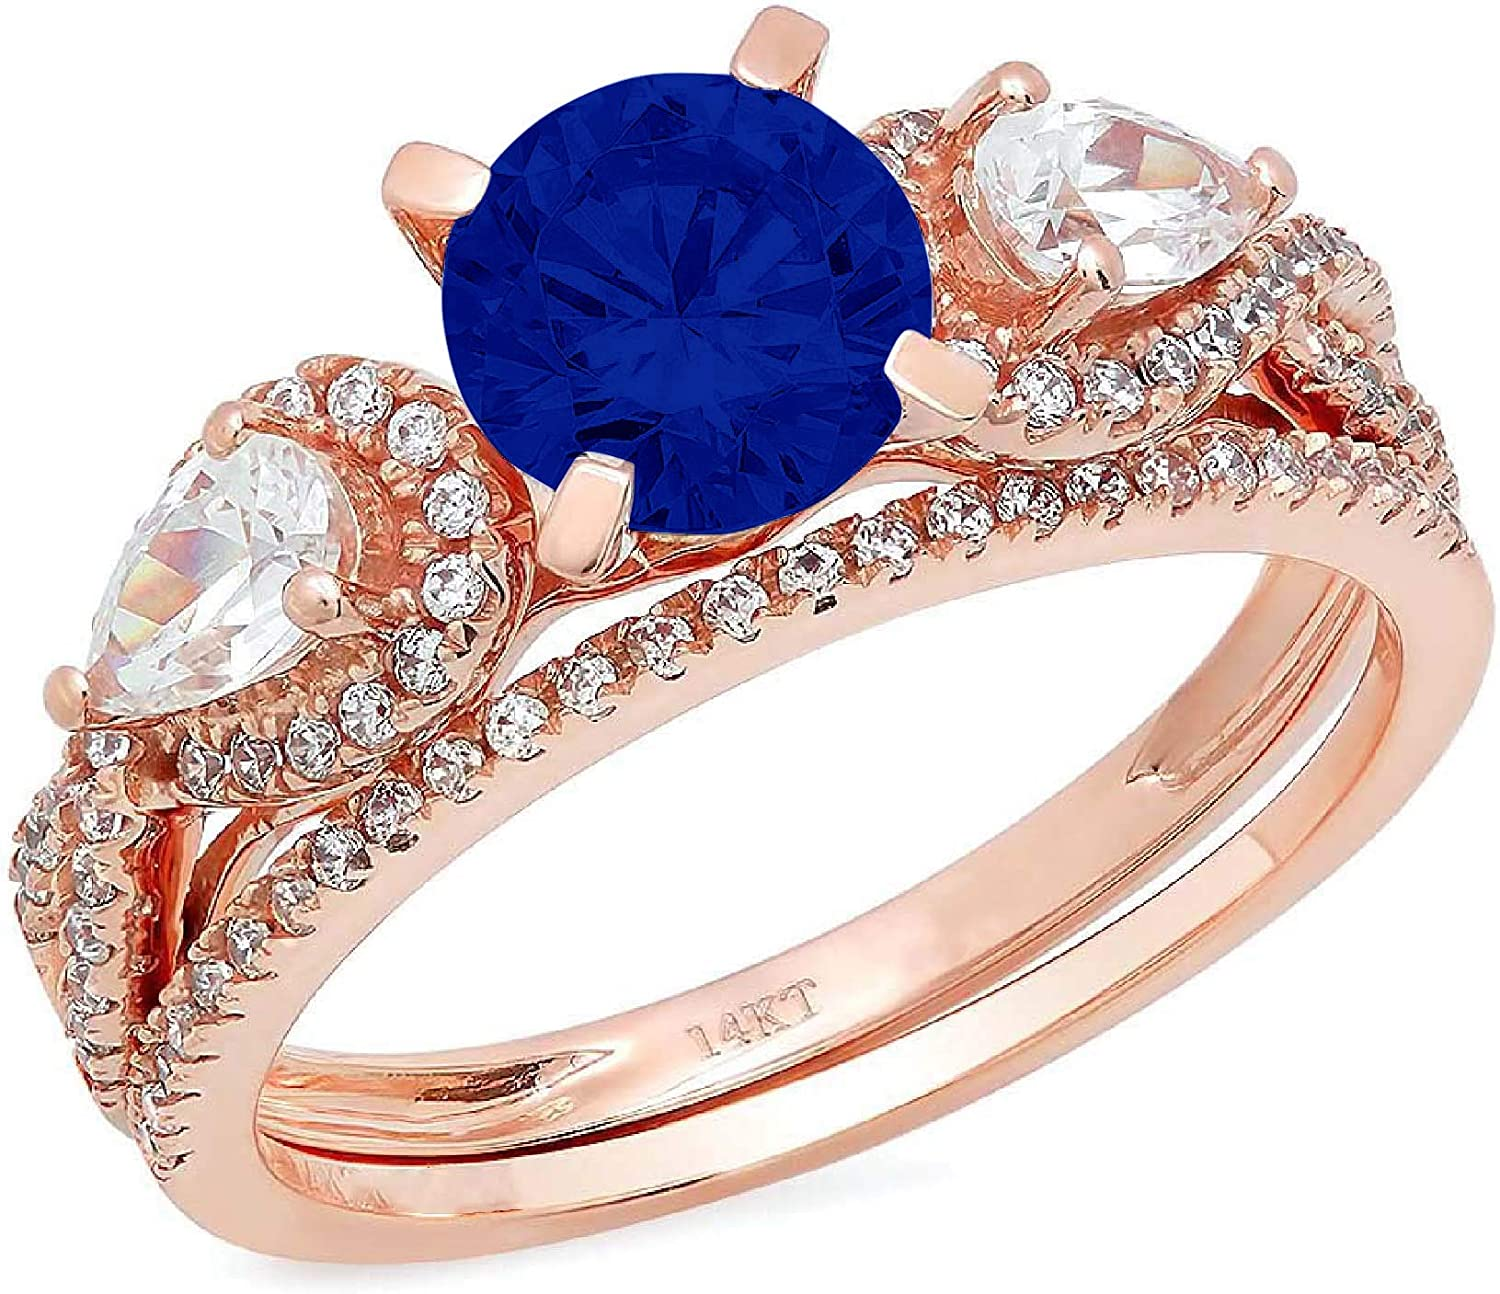 2.0ct Round Pear Cut Solitaire 3 stone Accent Flawless Simulated Blue Sapphire Engagement Promise Statement Anniversary Bridal Wedding Designer Ring Band set Solid 14k Rose Gold